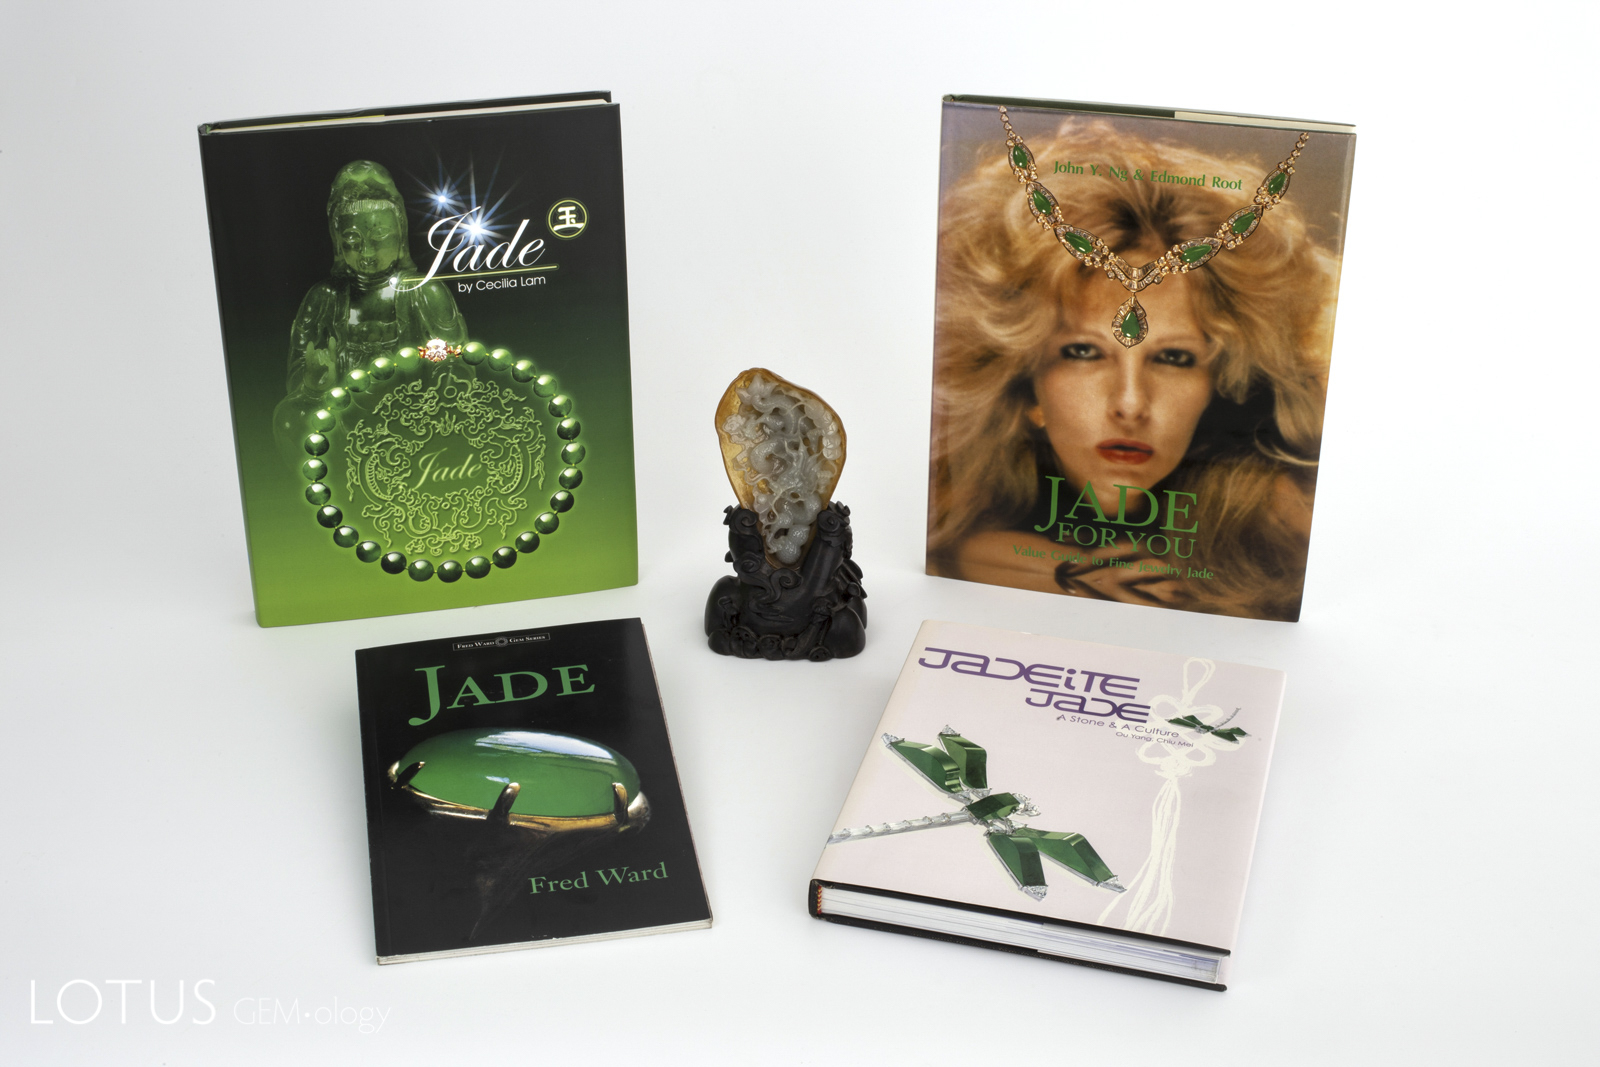 Four classic modern books on jade surround a Chinese carving in Burmese jade. Clockwise from top left: Jade by Cecilia Lam; Jade for You by John Ng & Edmond Root; Jade by Fred Ward, and Jadeite Jade: A Stone & a Culture by Ou Yang Chiu Mei.